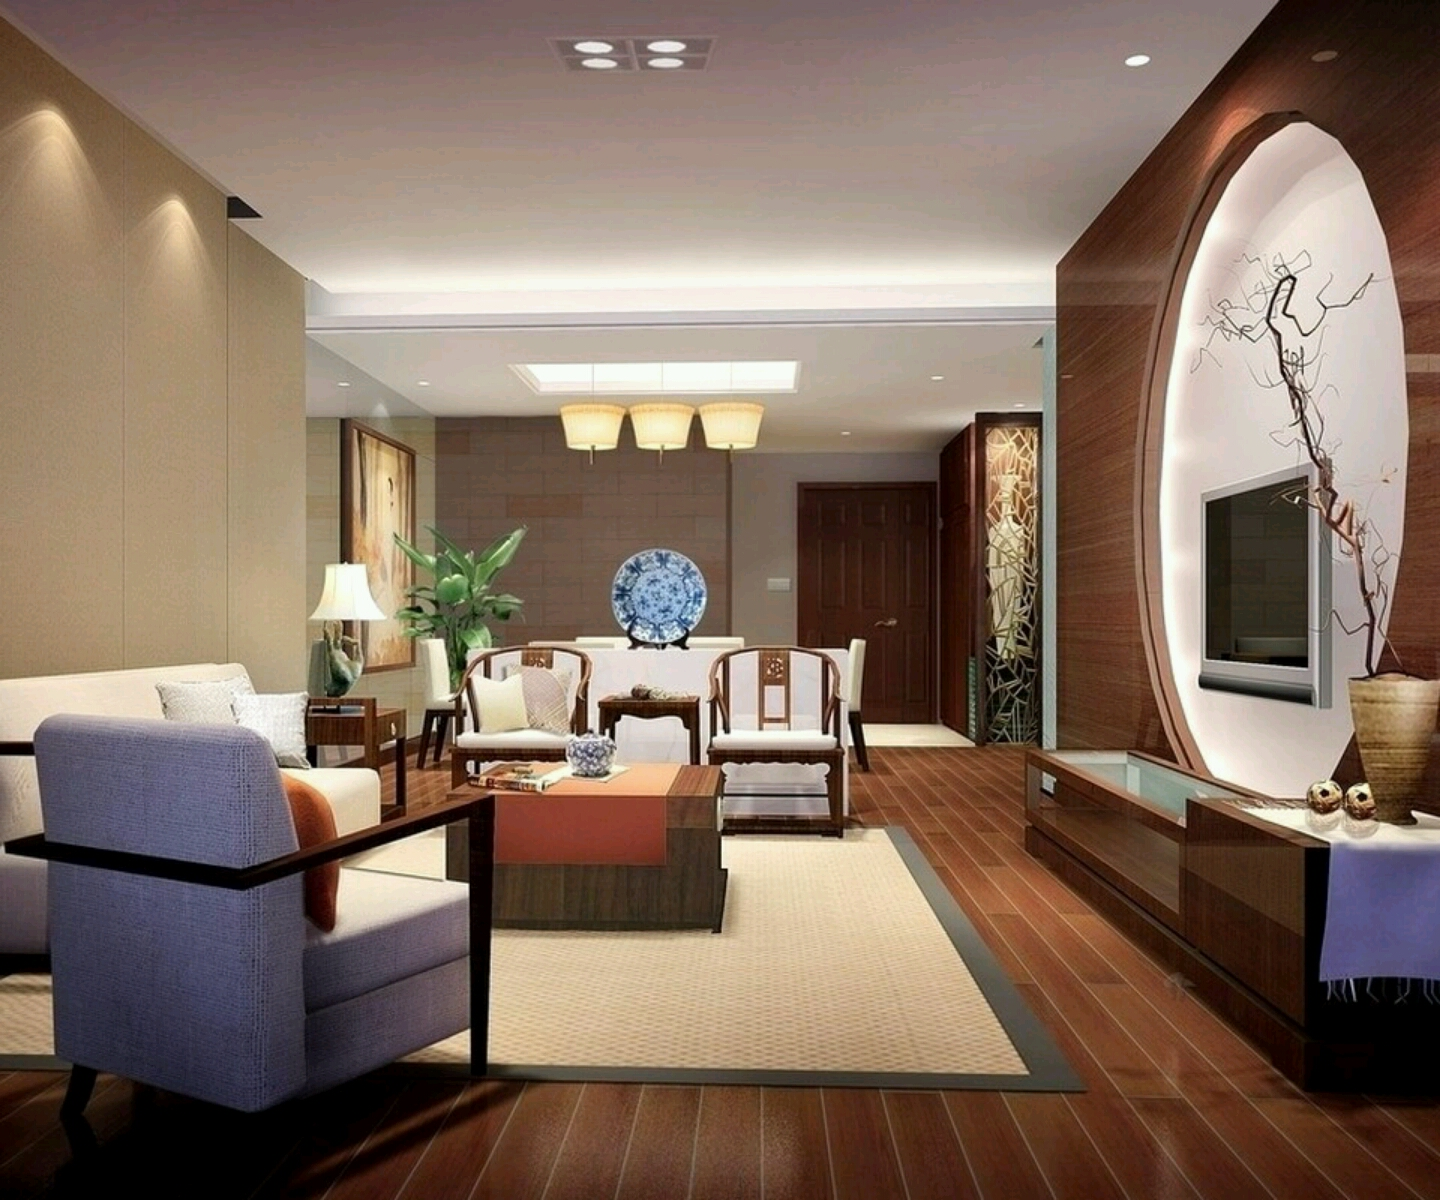 Home Design Ideas For Living Room: Luxury Homes Interior Decoration Living Room Designs Ideas